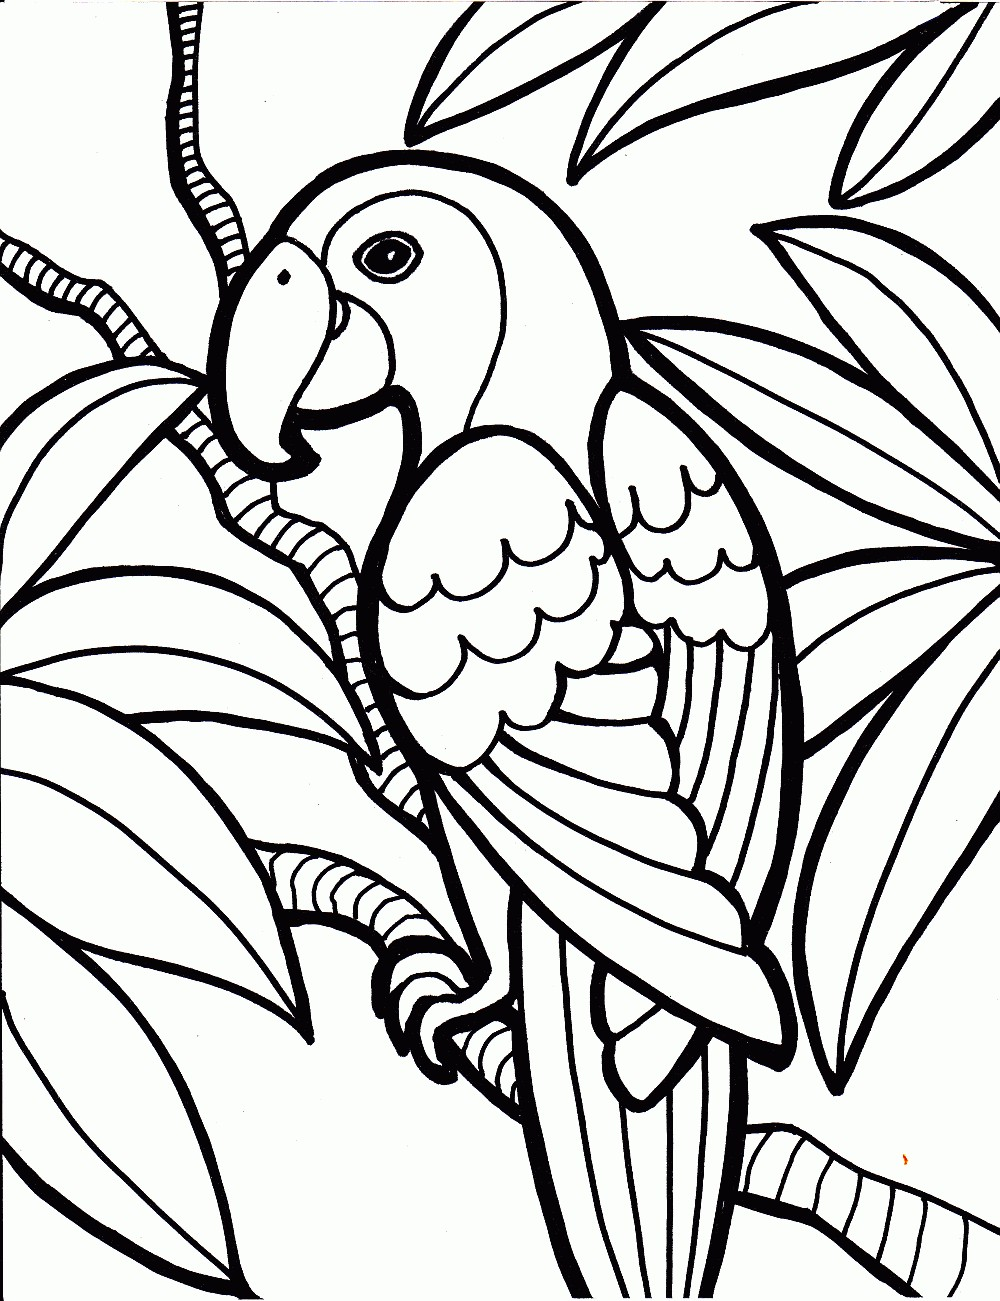 parrot birds coloring page - Couloring Sheets